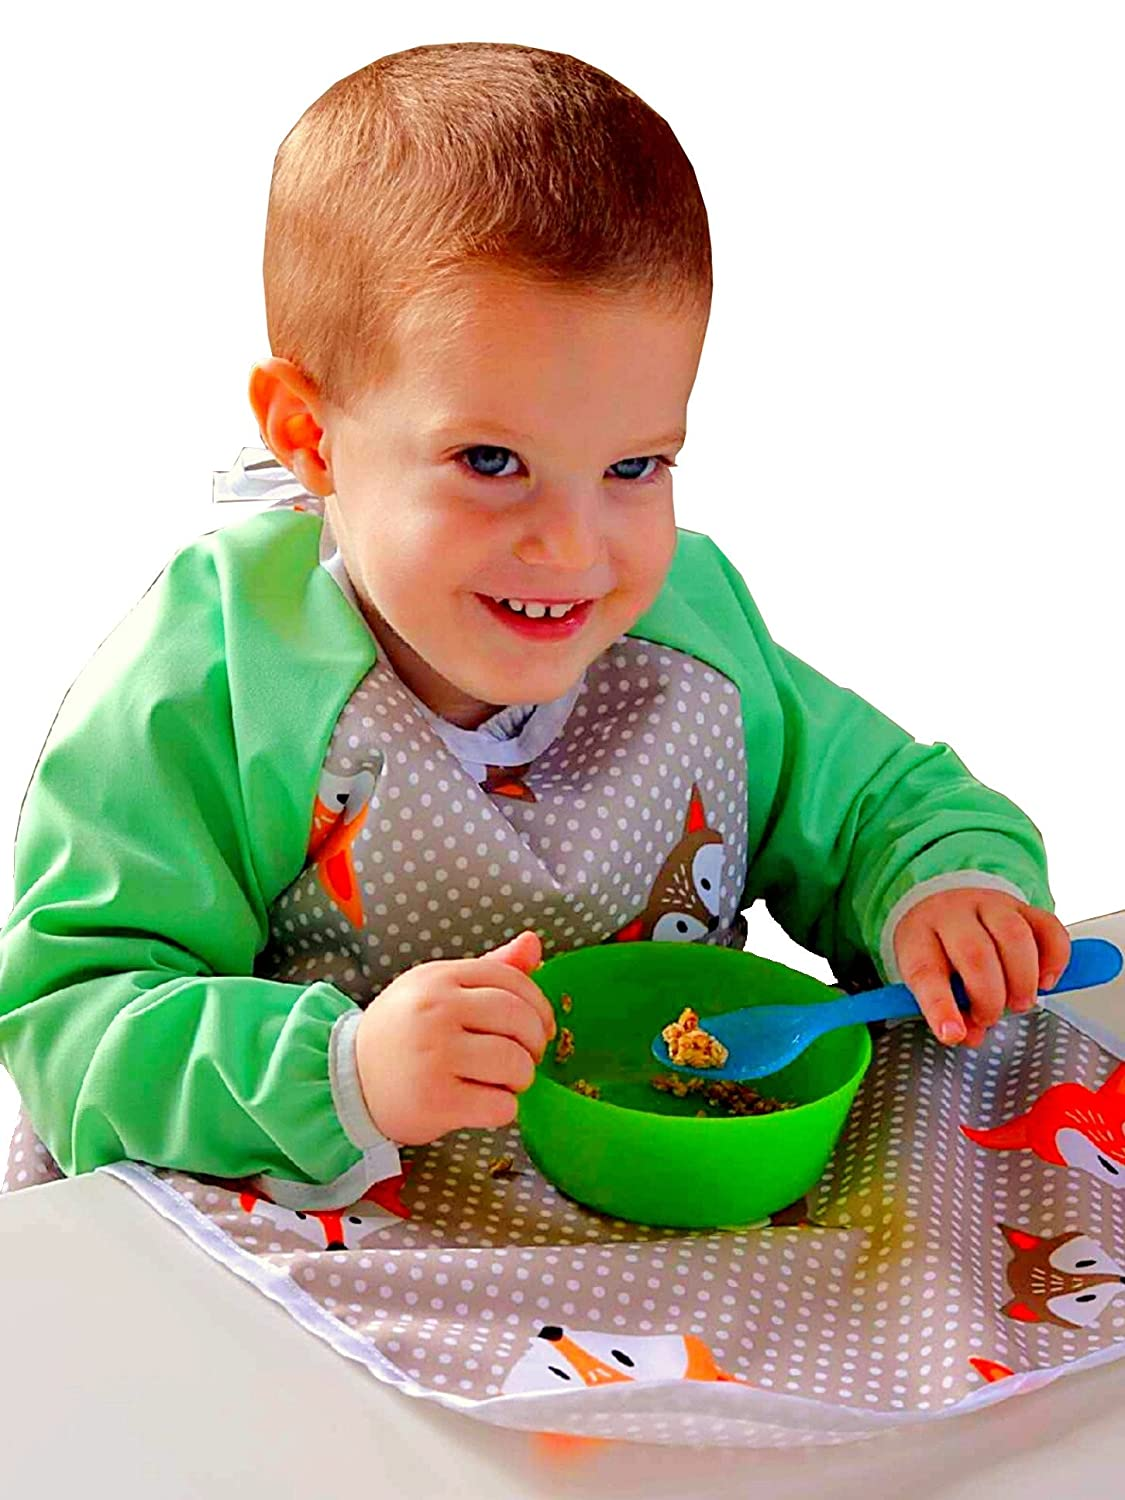 6-18M, Foxes//Mint Perfect for Baby led Weaning Or Messy Play Lilypoppy Sleeved bib makes mealtimes fun again Soft Waterproof Bibs with Sleeves Gives Full Coverage for Baby and Toddlers